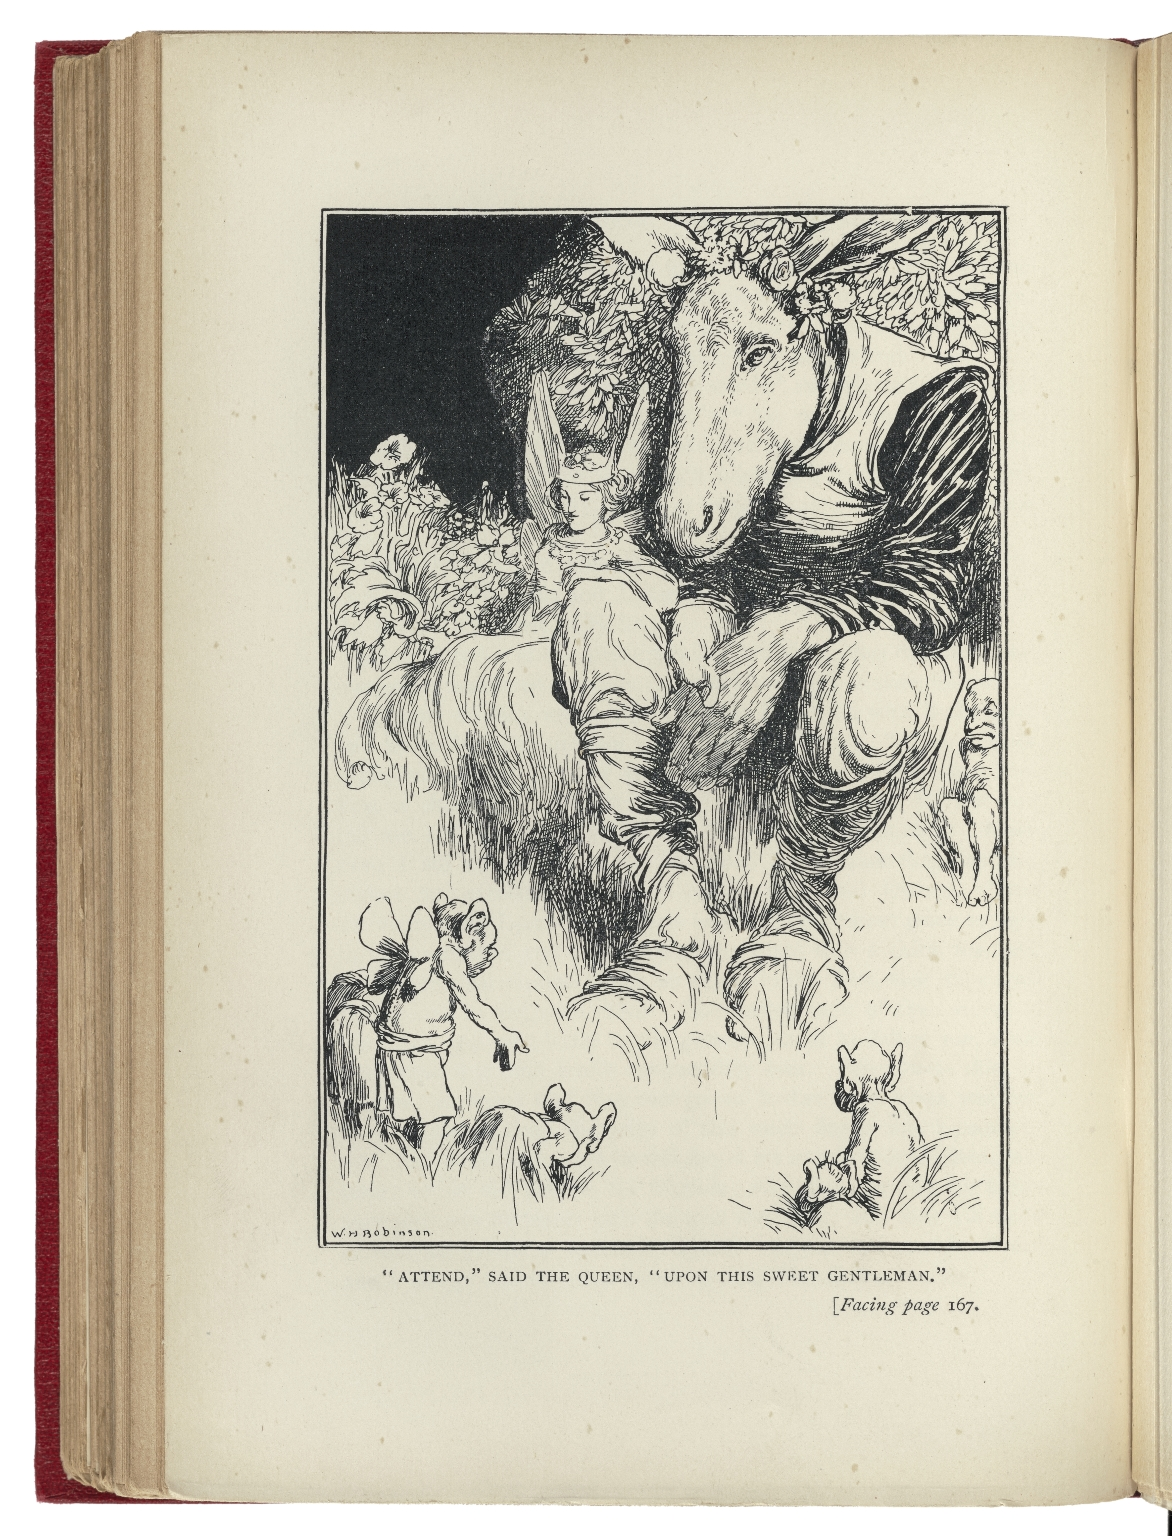 Tales from Shakespeare / by Charles Lamb ; with sixteen full page illustrations by W.H. Robinson.